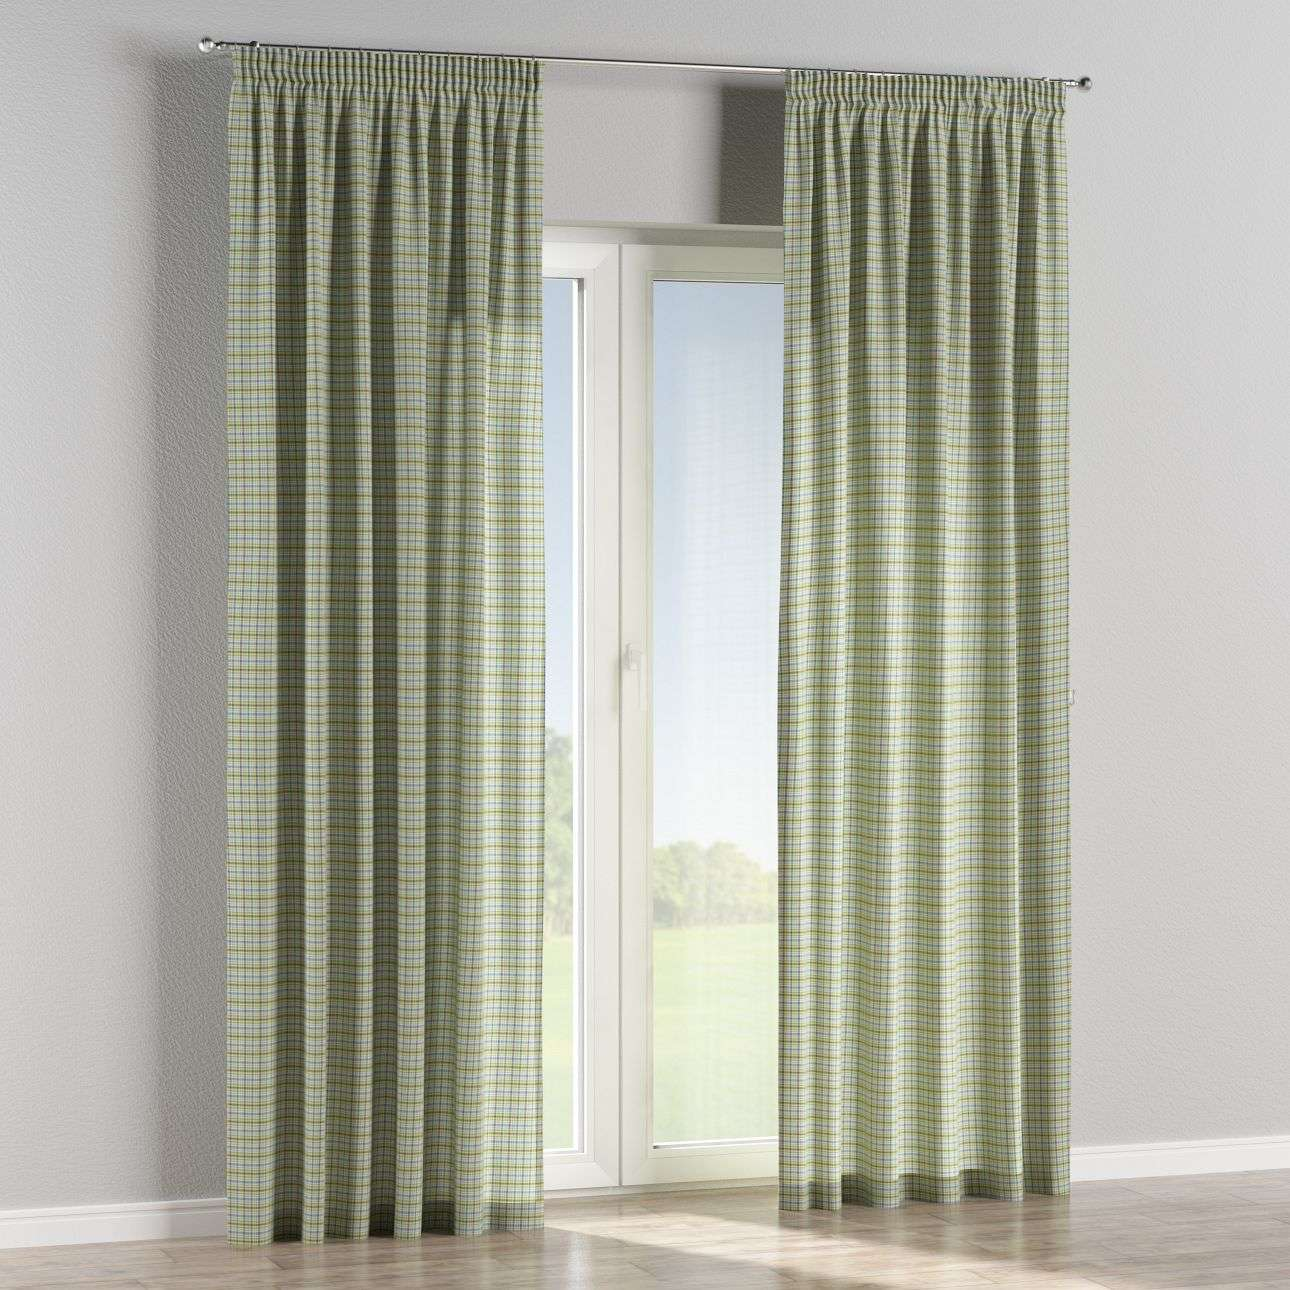 Pencil pleat curtains 130 × 260 cm (51 × 102 inch) in collection Bristol, fabric: 126-69